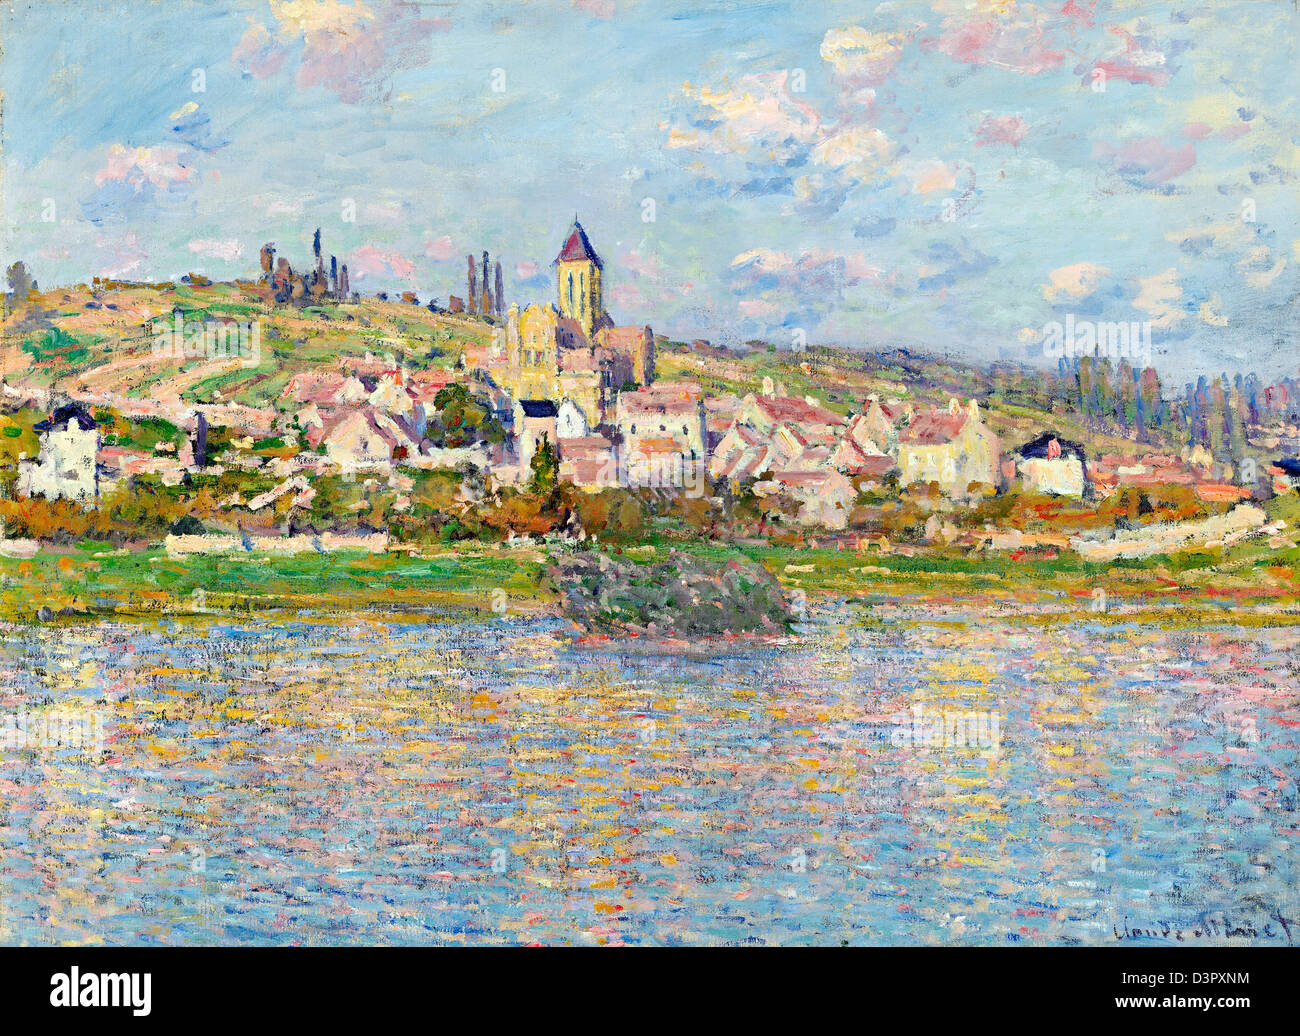 Claude Monet, Vetheuil 1879 Oil on canvas. National Gallery of Victoria, Australia - Stock Image